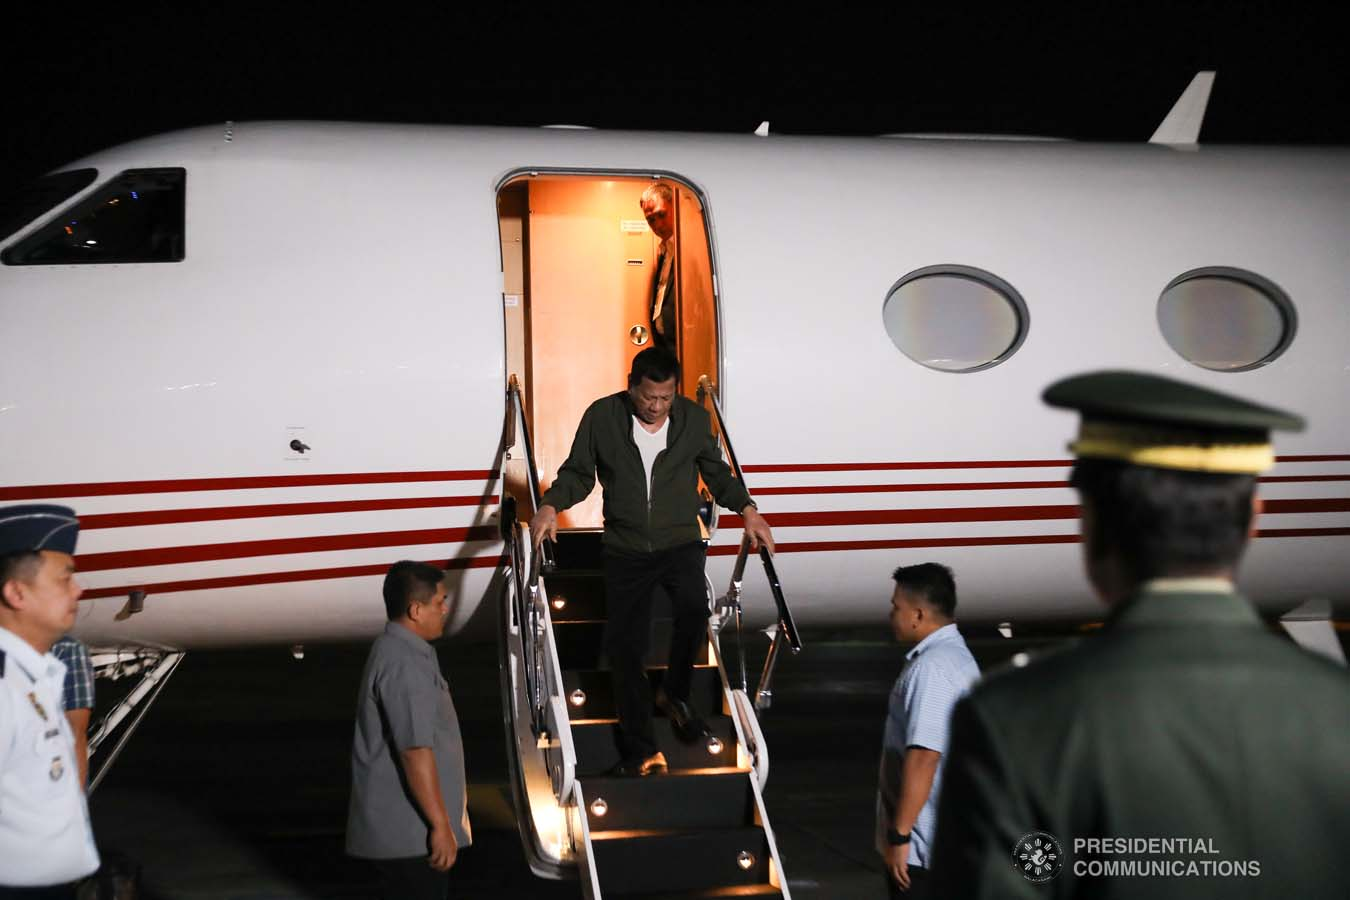 President Rodrigo Roa Duterte disembarks from a plane upon his arrival at the Villamor Air Base in Pasay City on November 26, 2019 after his successful participation in the Association of Southeast Asian Nations (ASEAN)-Republic of Korea Commemorative Summit in Busan. ALFRED FRIAS/PRESIDENTIAL PHOTO